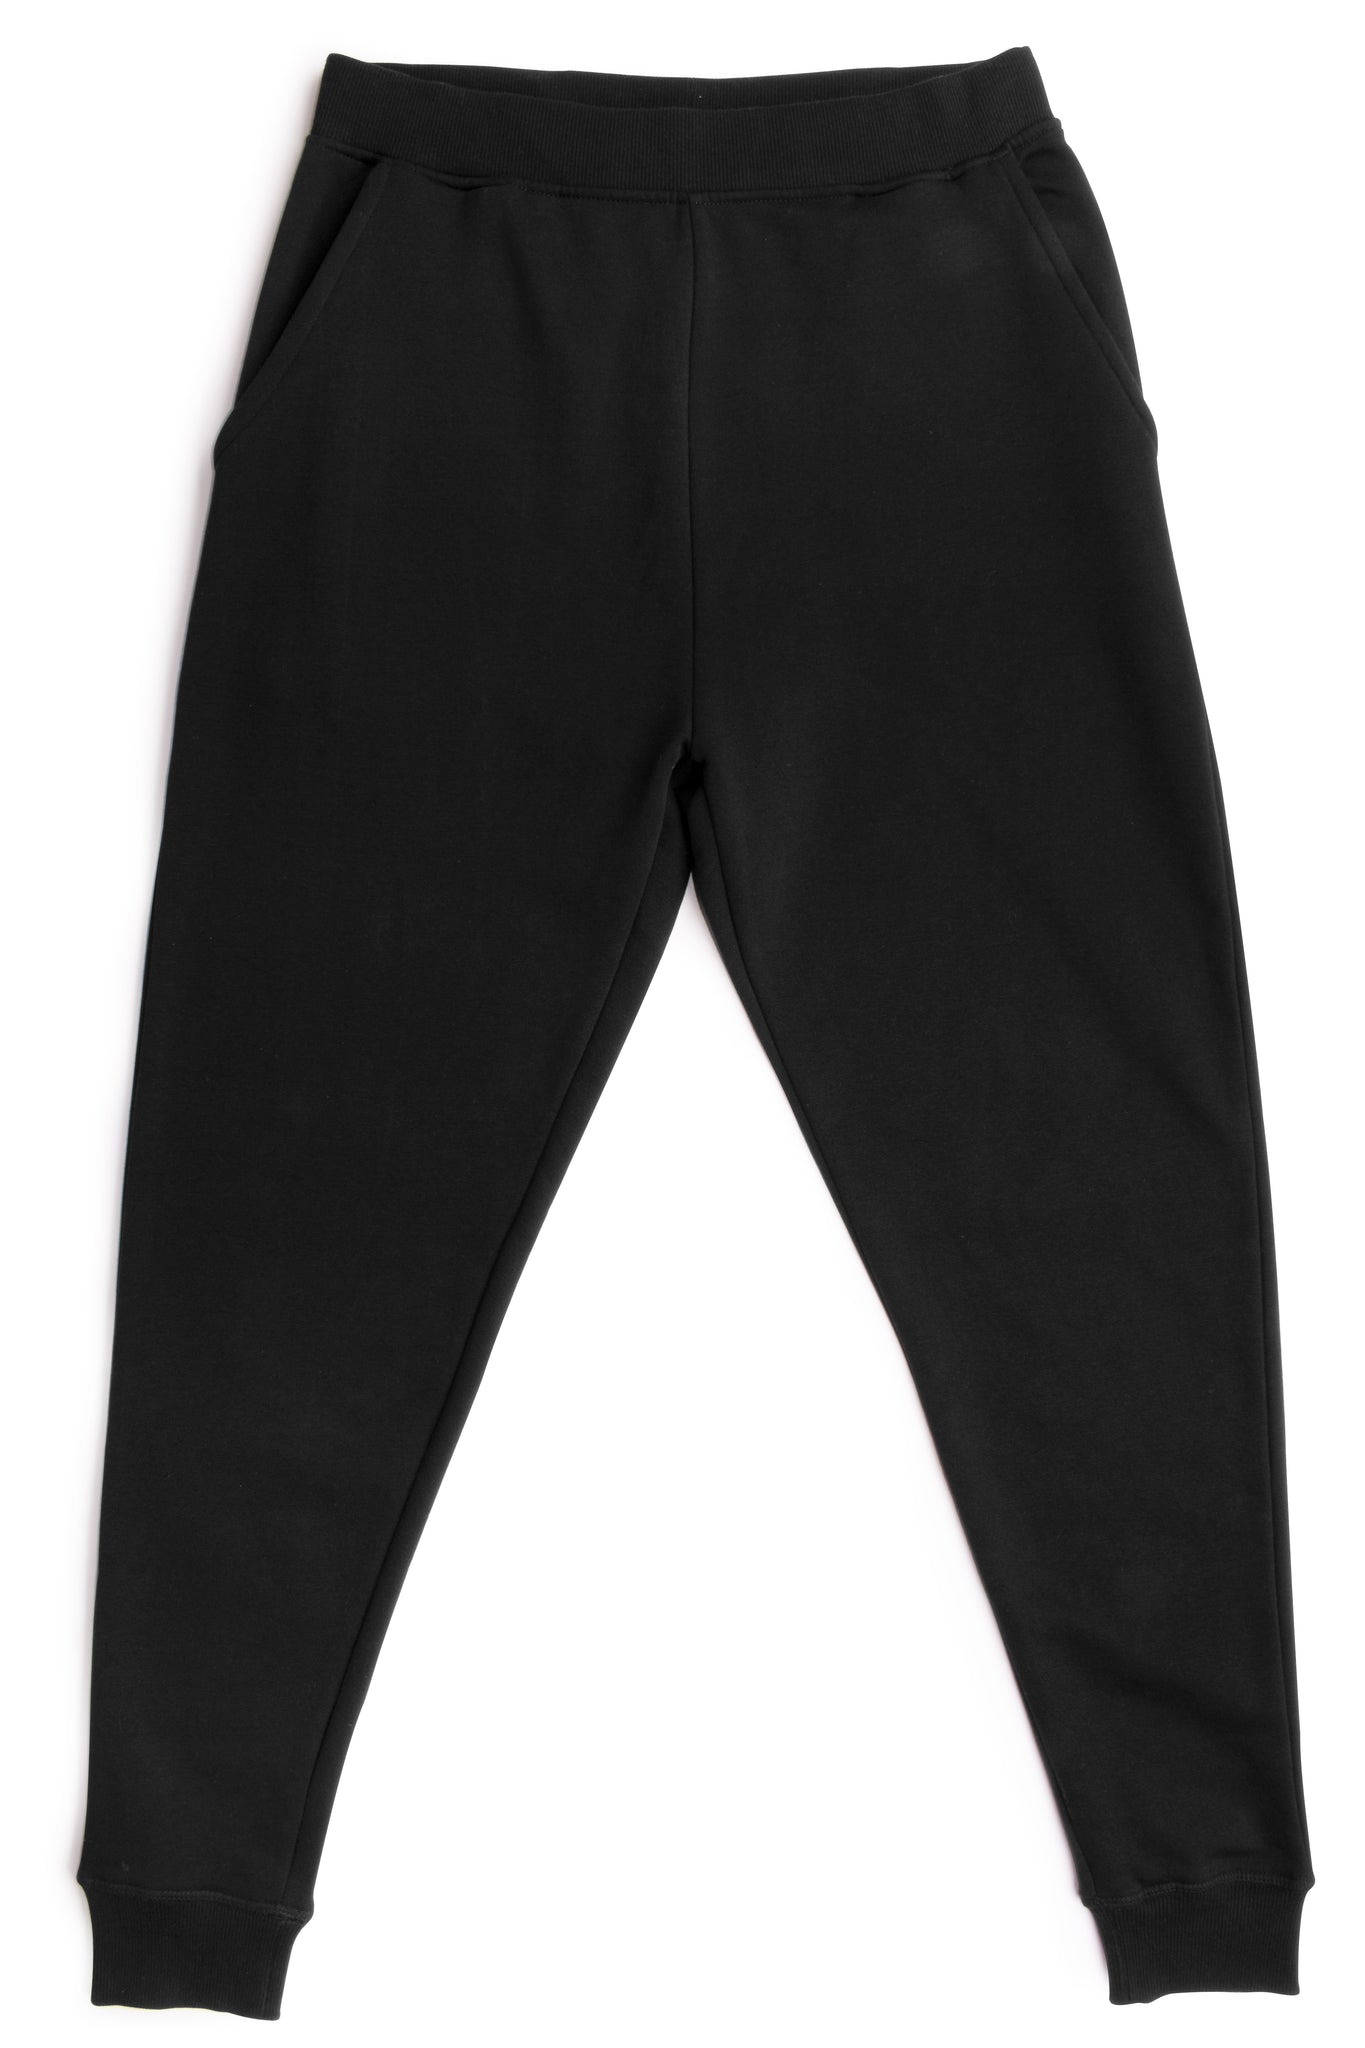 HERO-5020R Unisex Joggers - Black (Relaxed Fit)